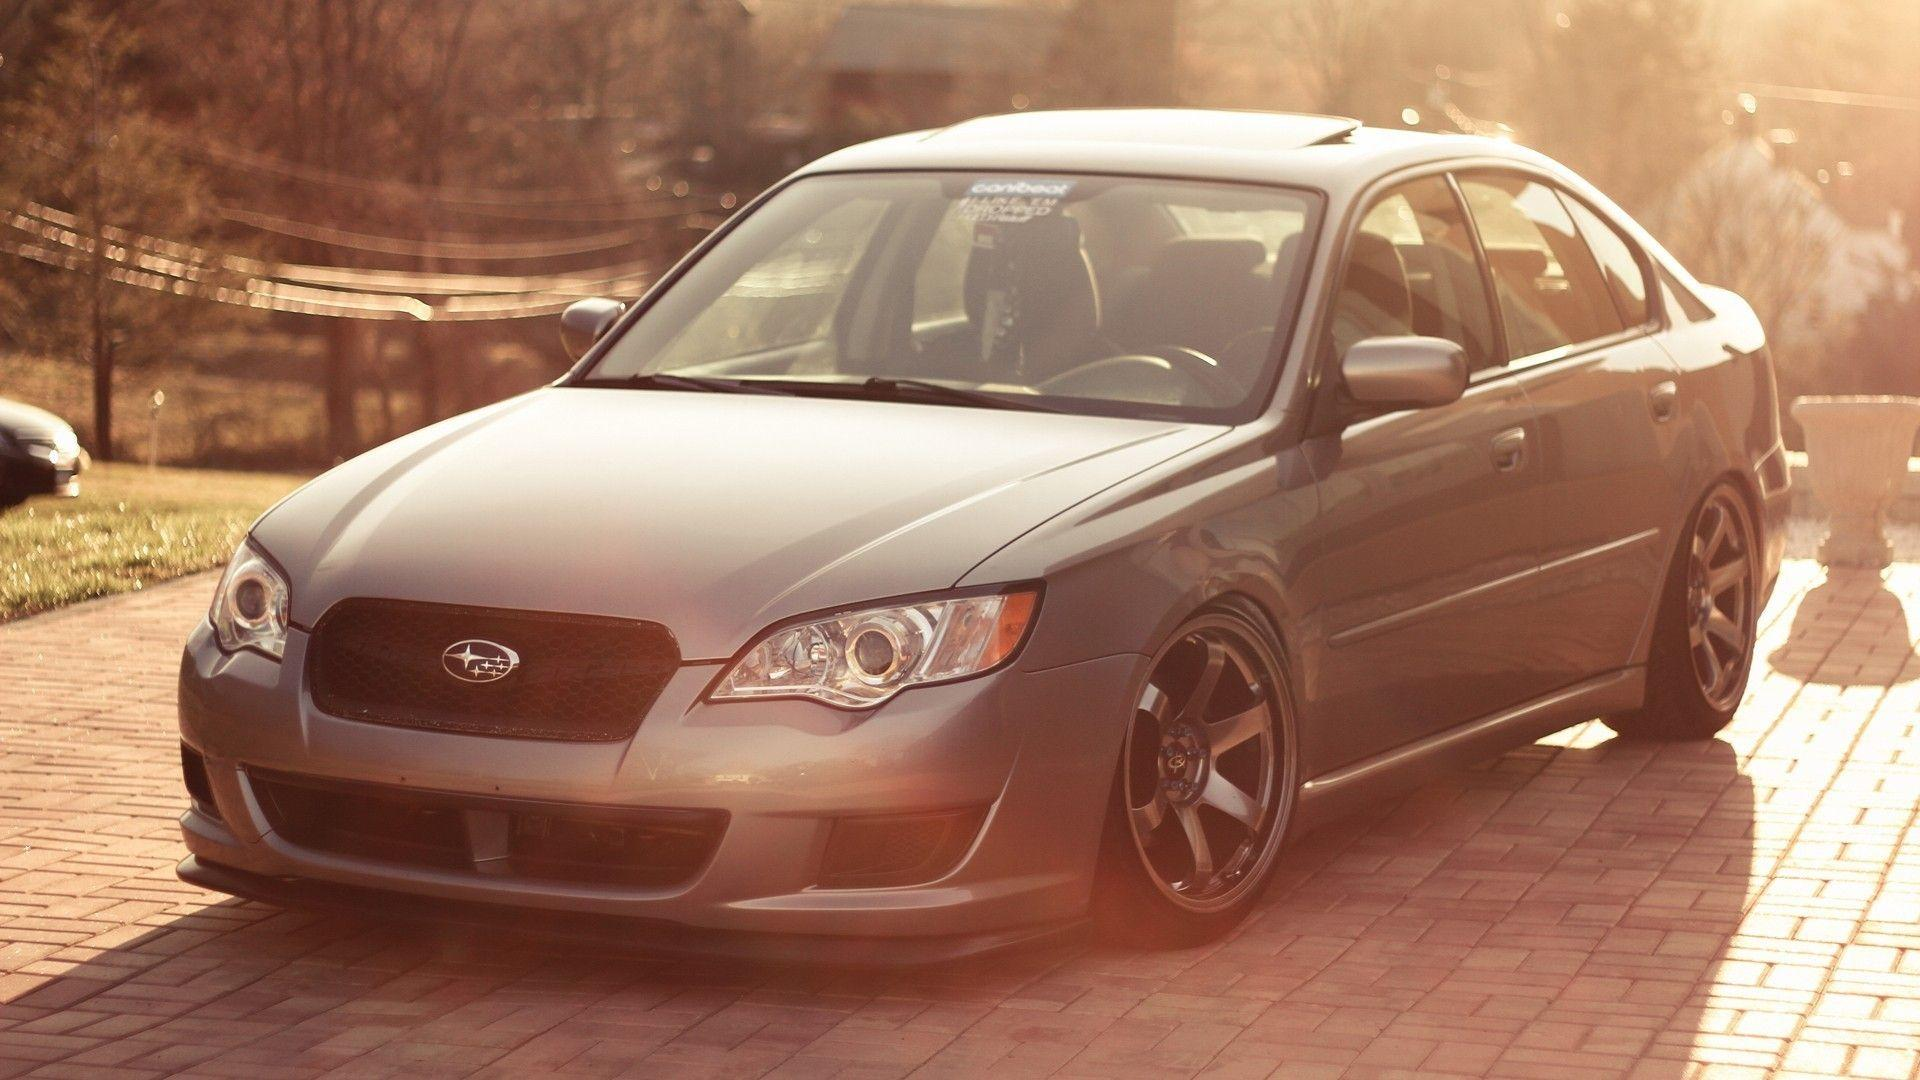 Subaru legacy automobiles cars wallpapers